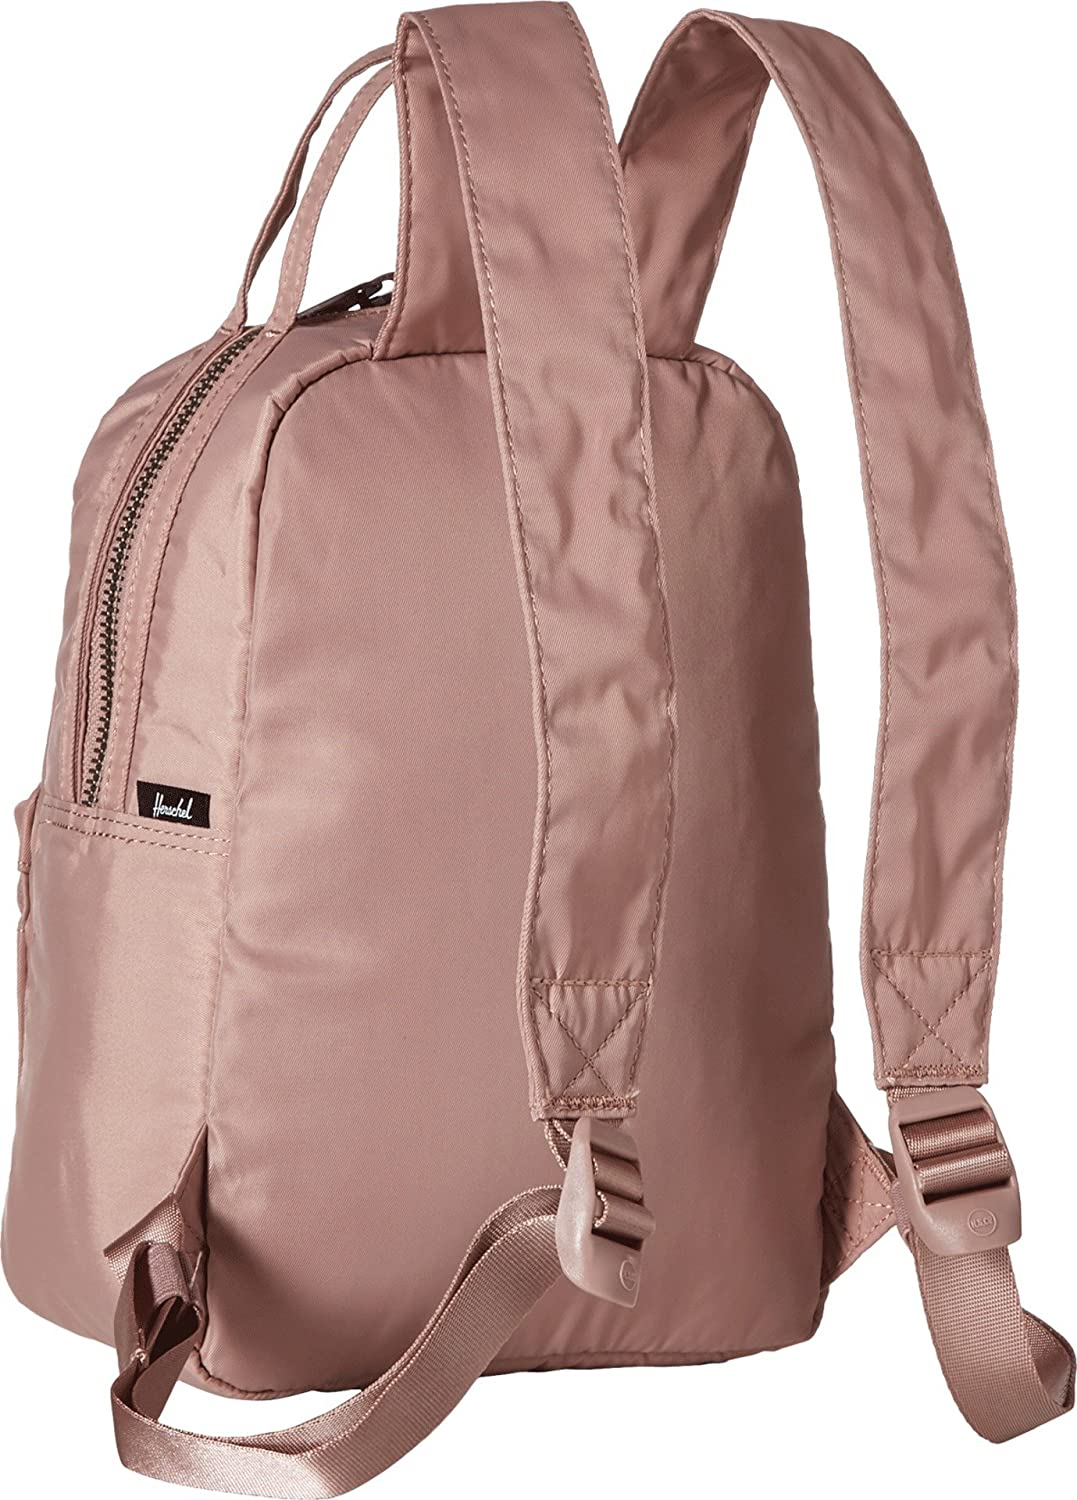 5040036a8b Herschel Flight Satin Nova Mini Backpack antique pink  Amazon.co.uk   Clothing